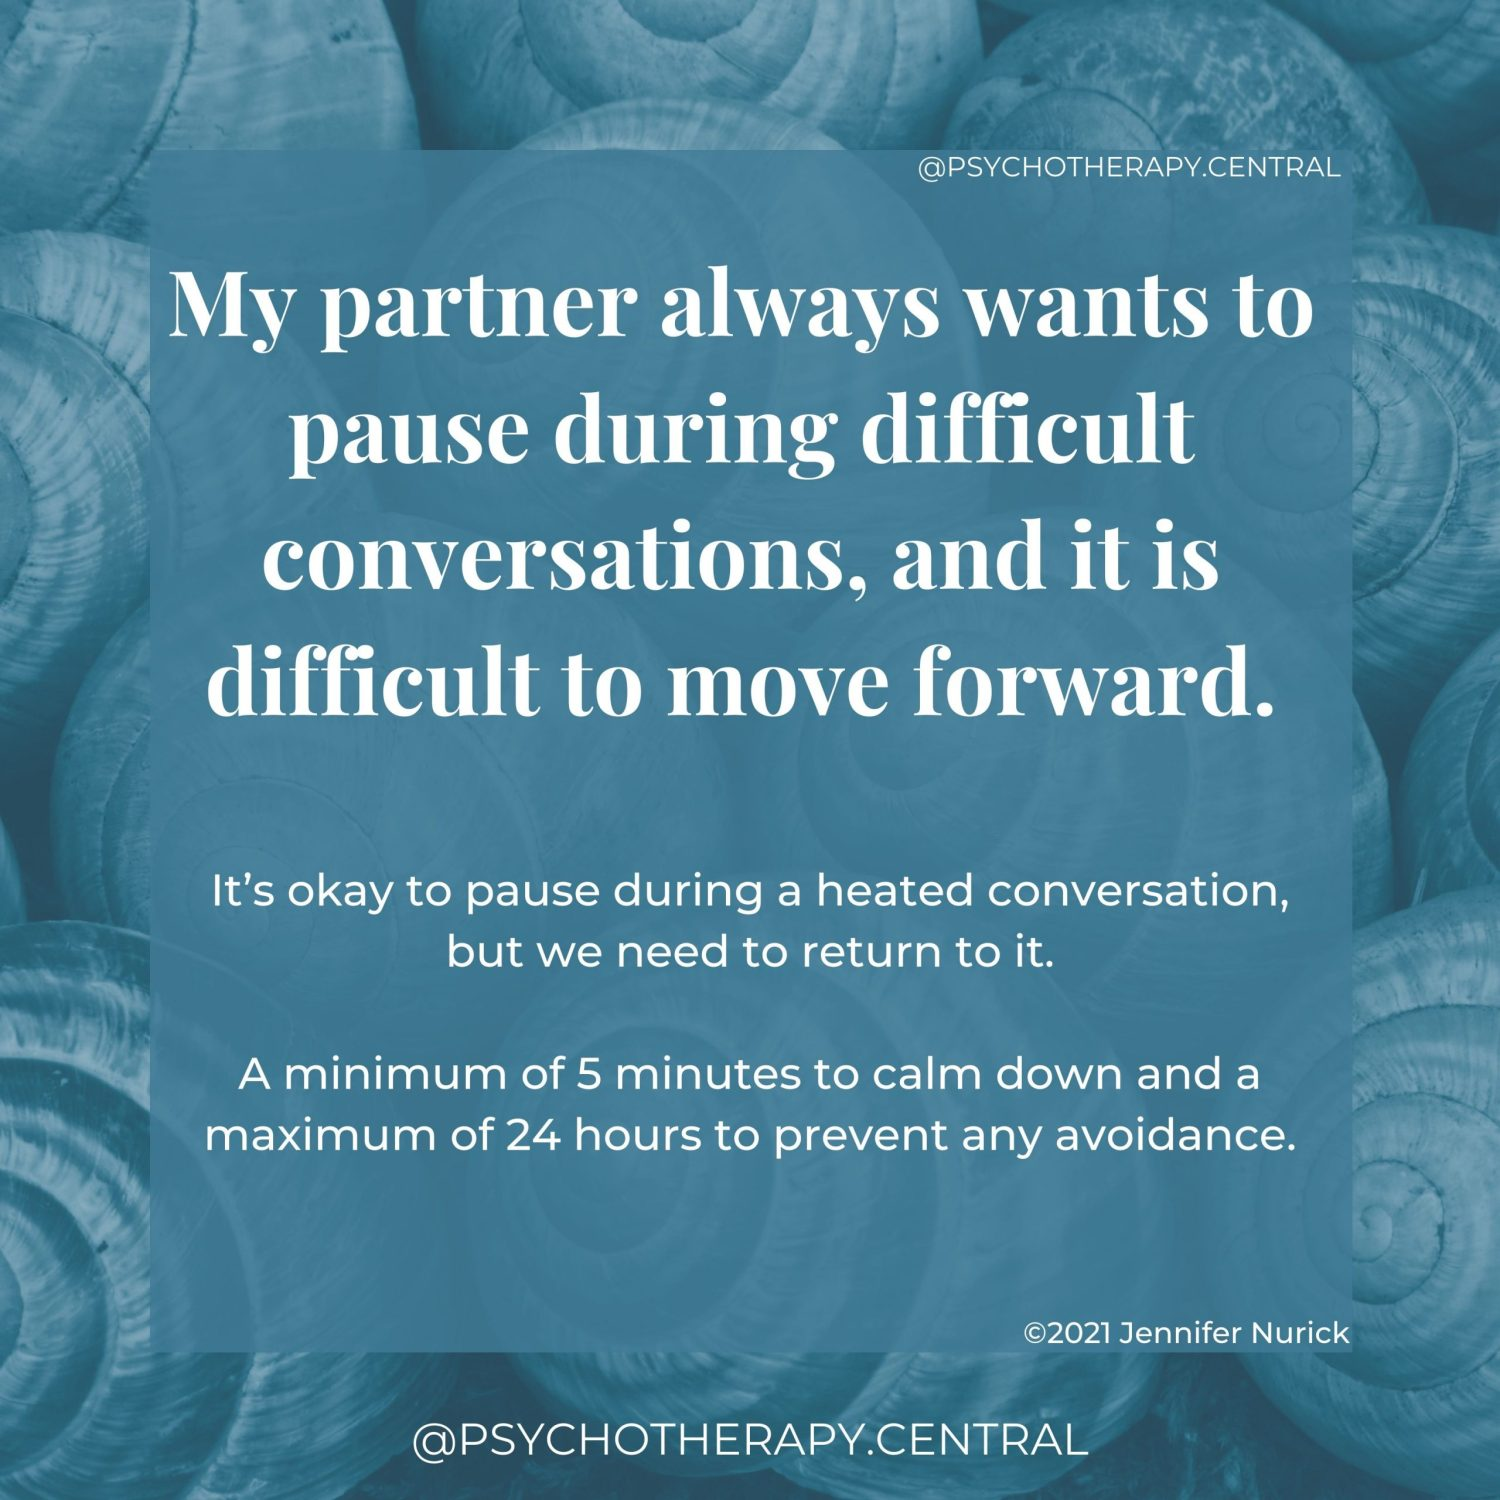 My partner always wants to pause during difficult conversations, and it is difficult to move forward.